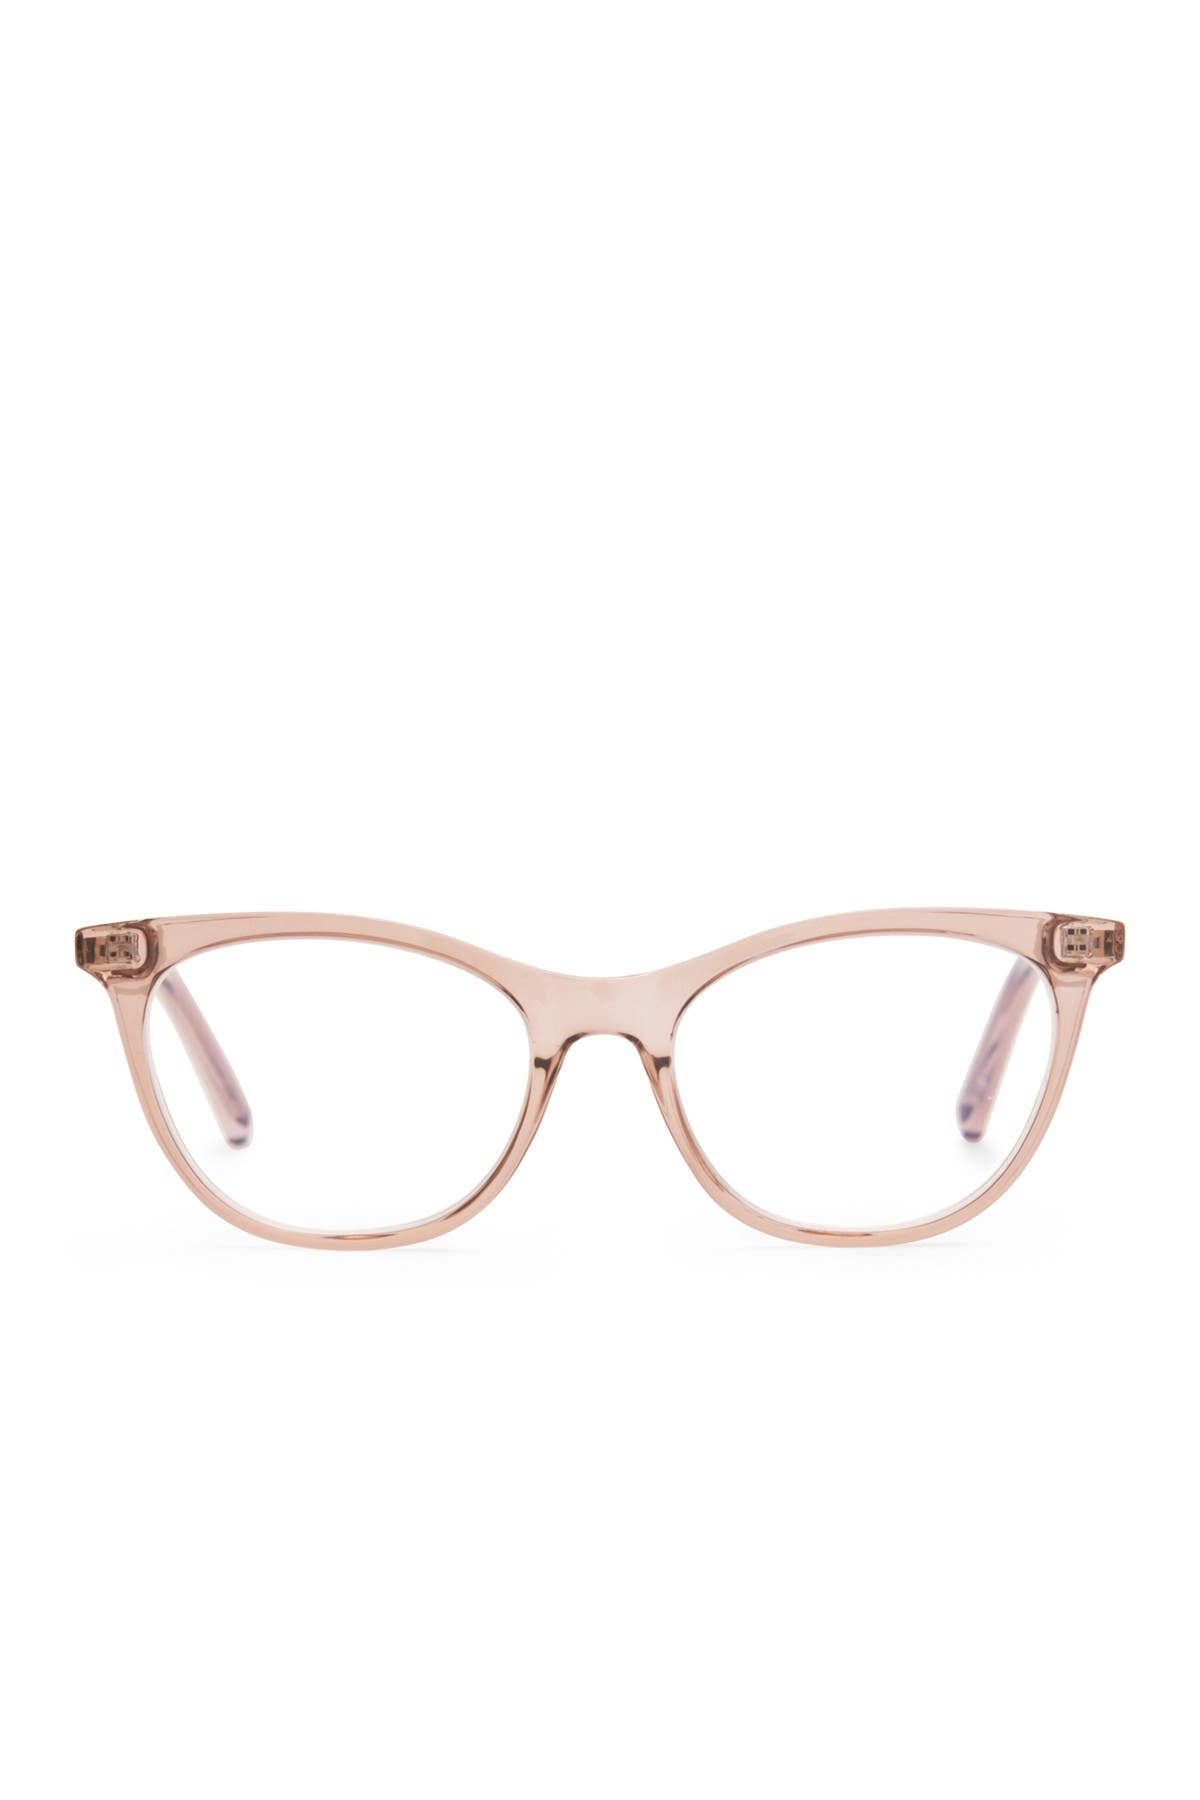 Image of DIFF Eyewear Kady 51mm Optical Frames